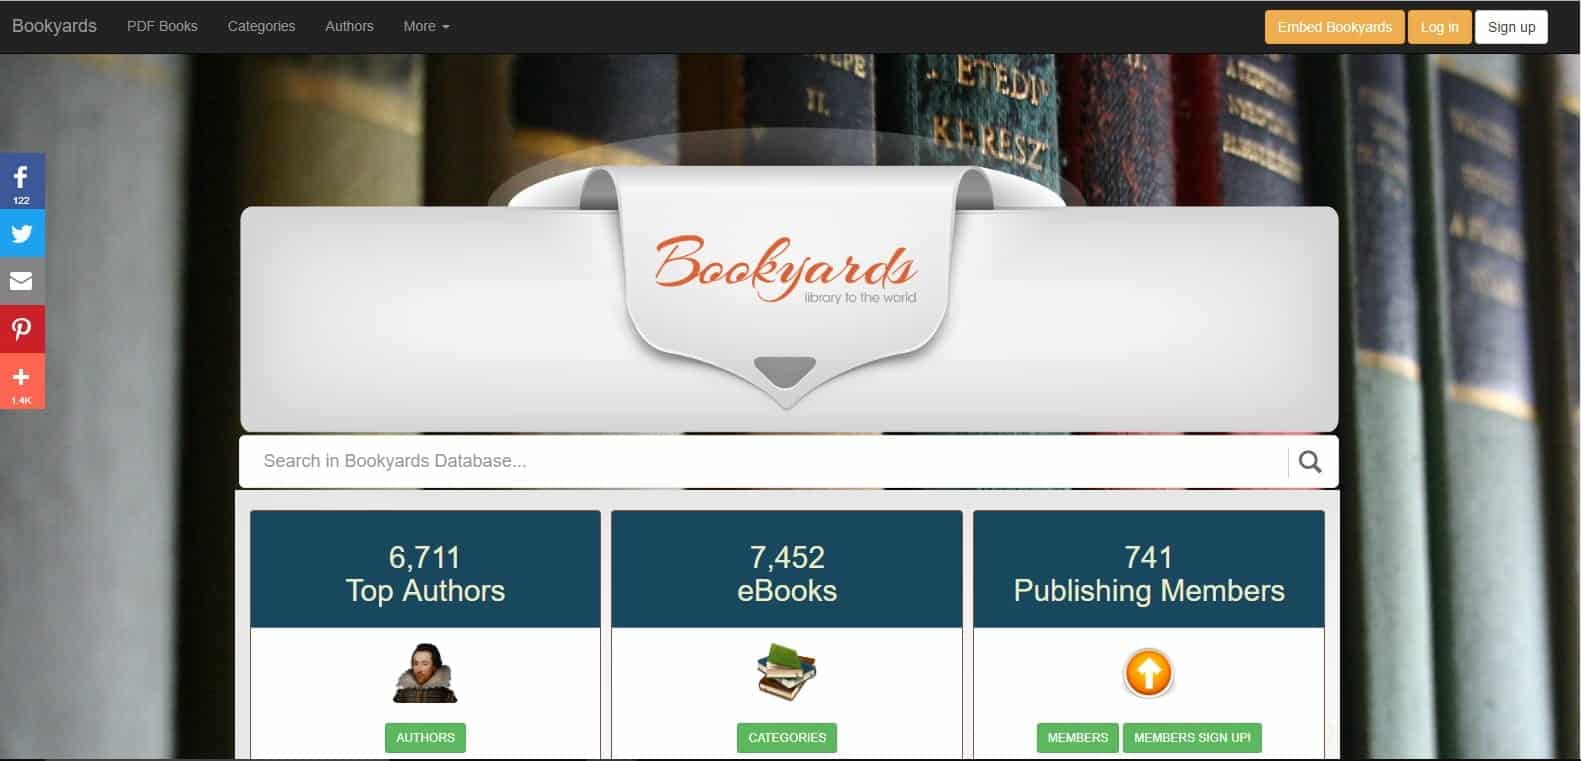 book torrents site a box in space